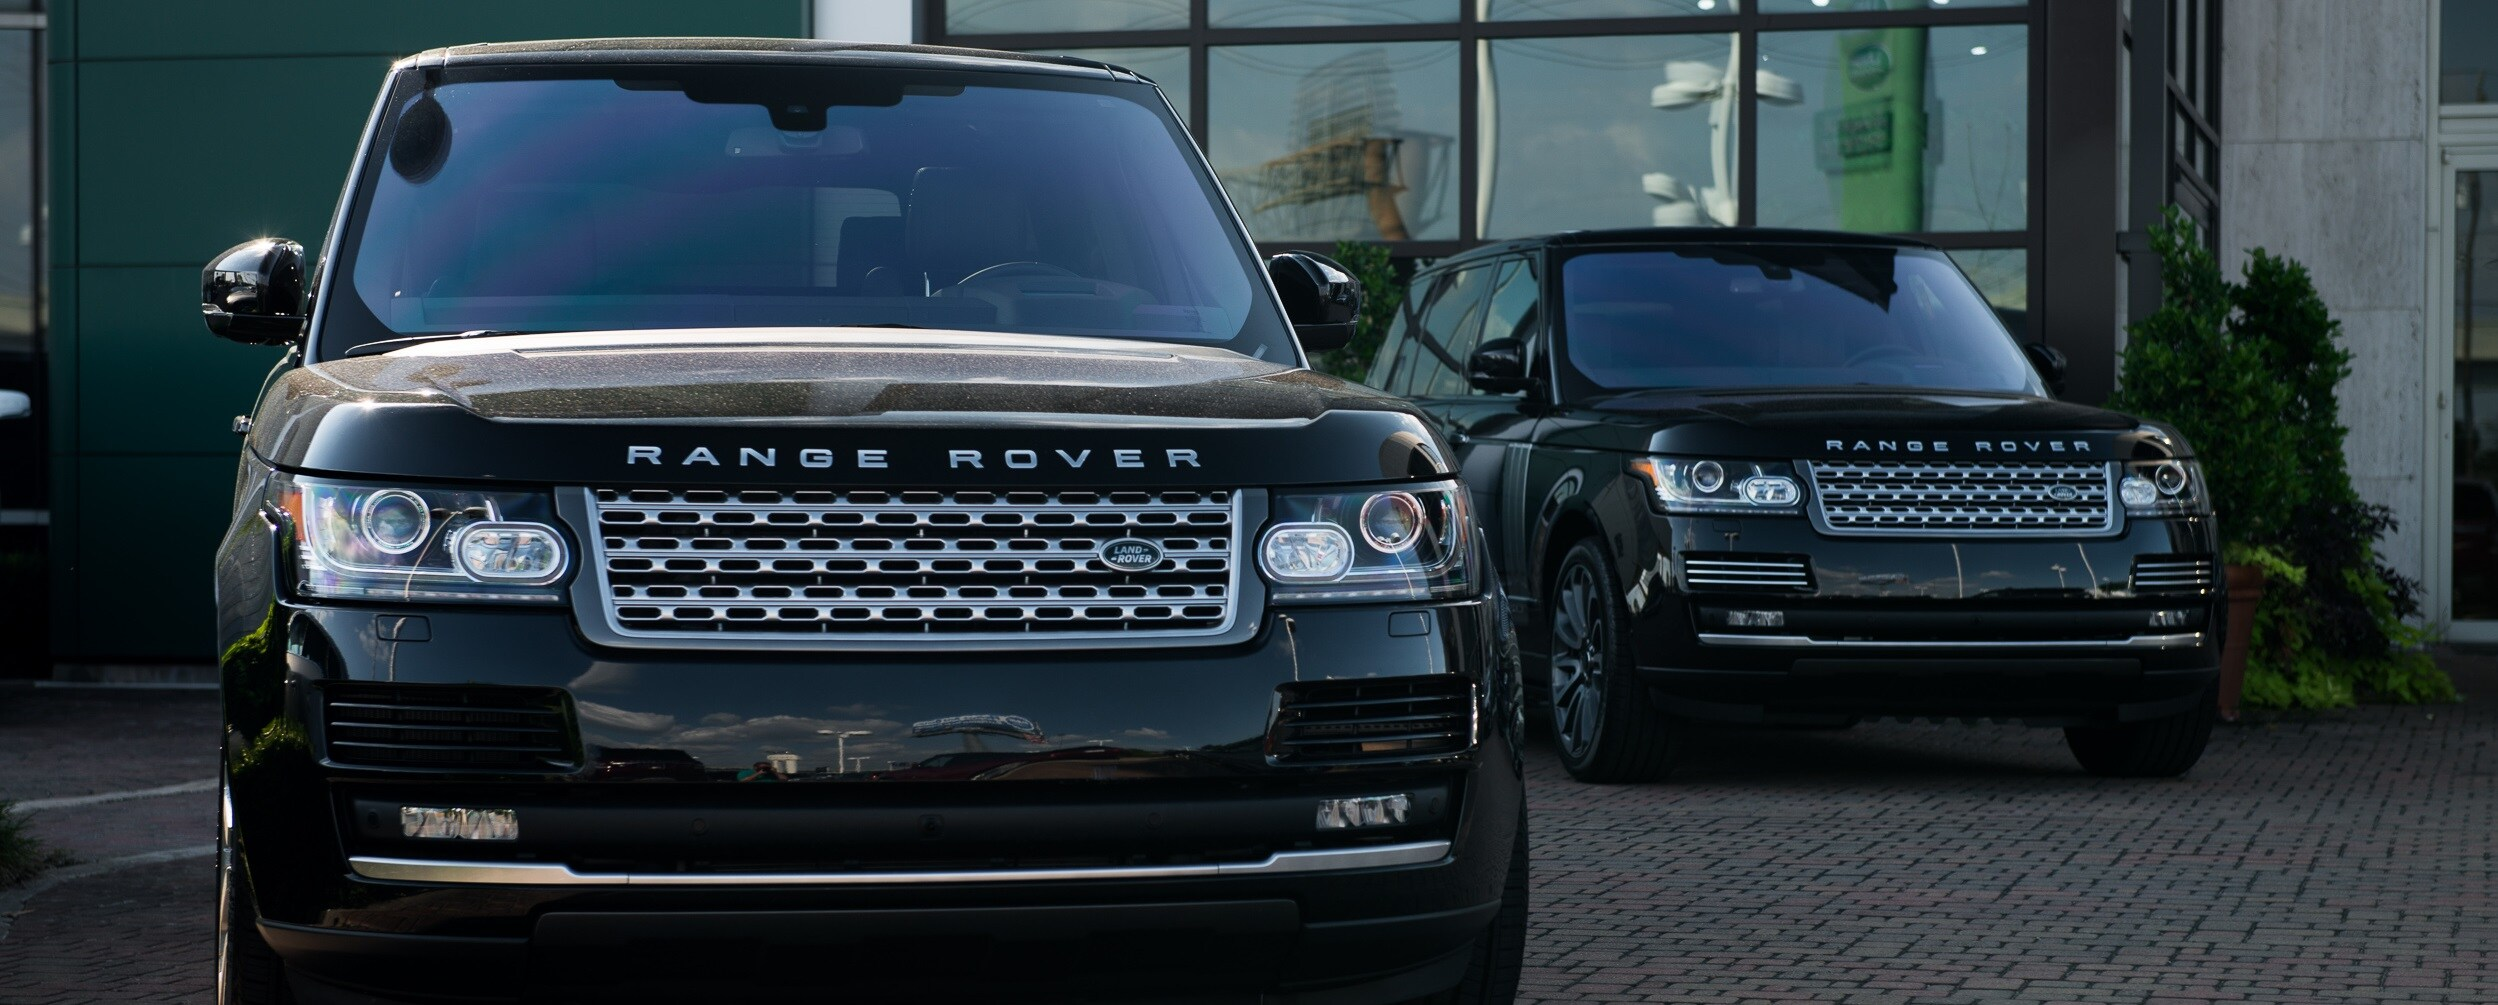 Land Rover Southwest Houston